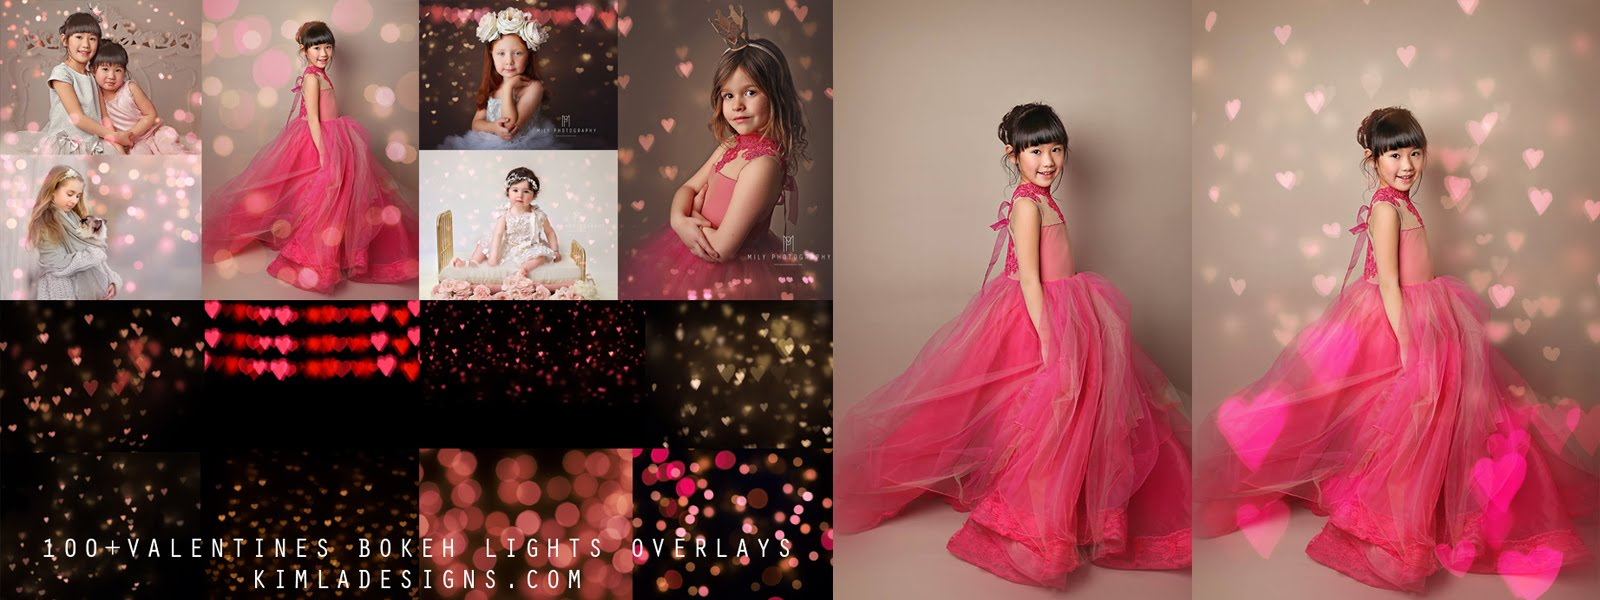 100+ Valentines Bokeh Overlays + 2 Free Gifts